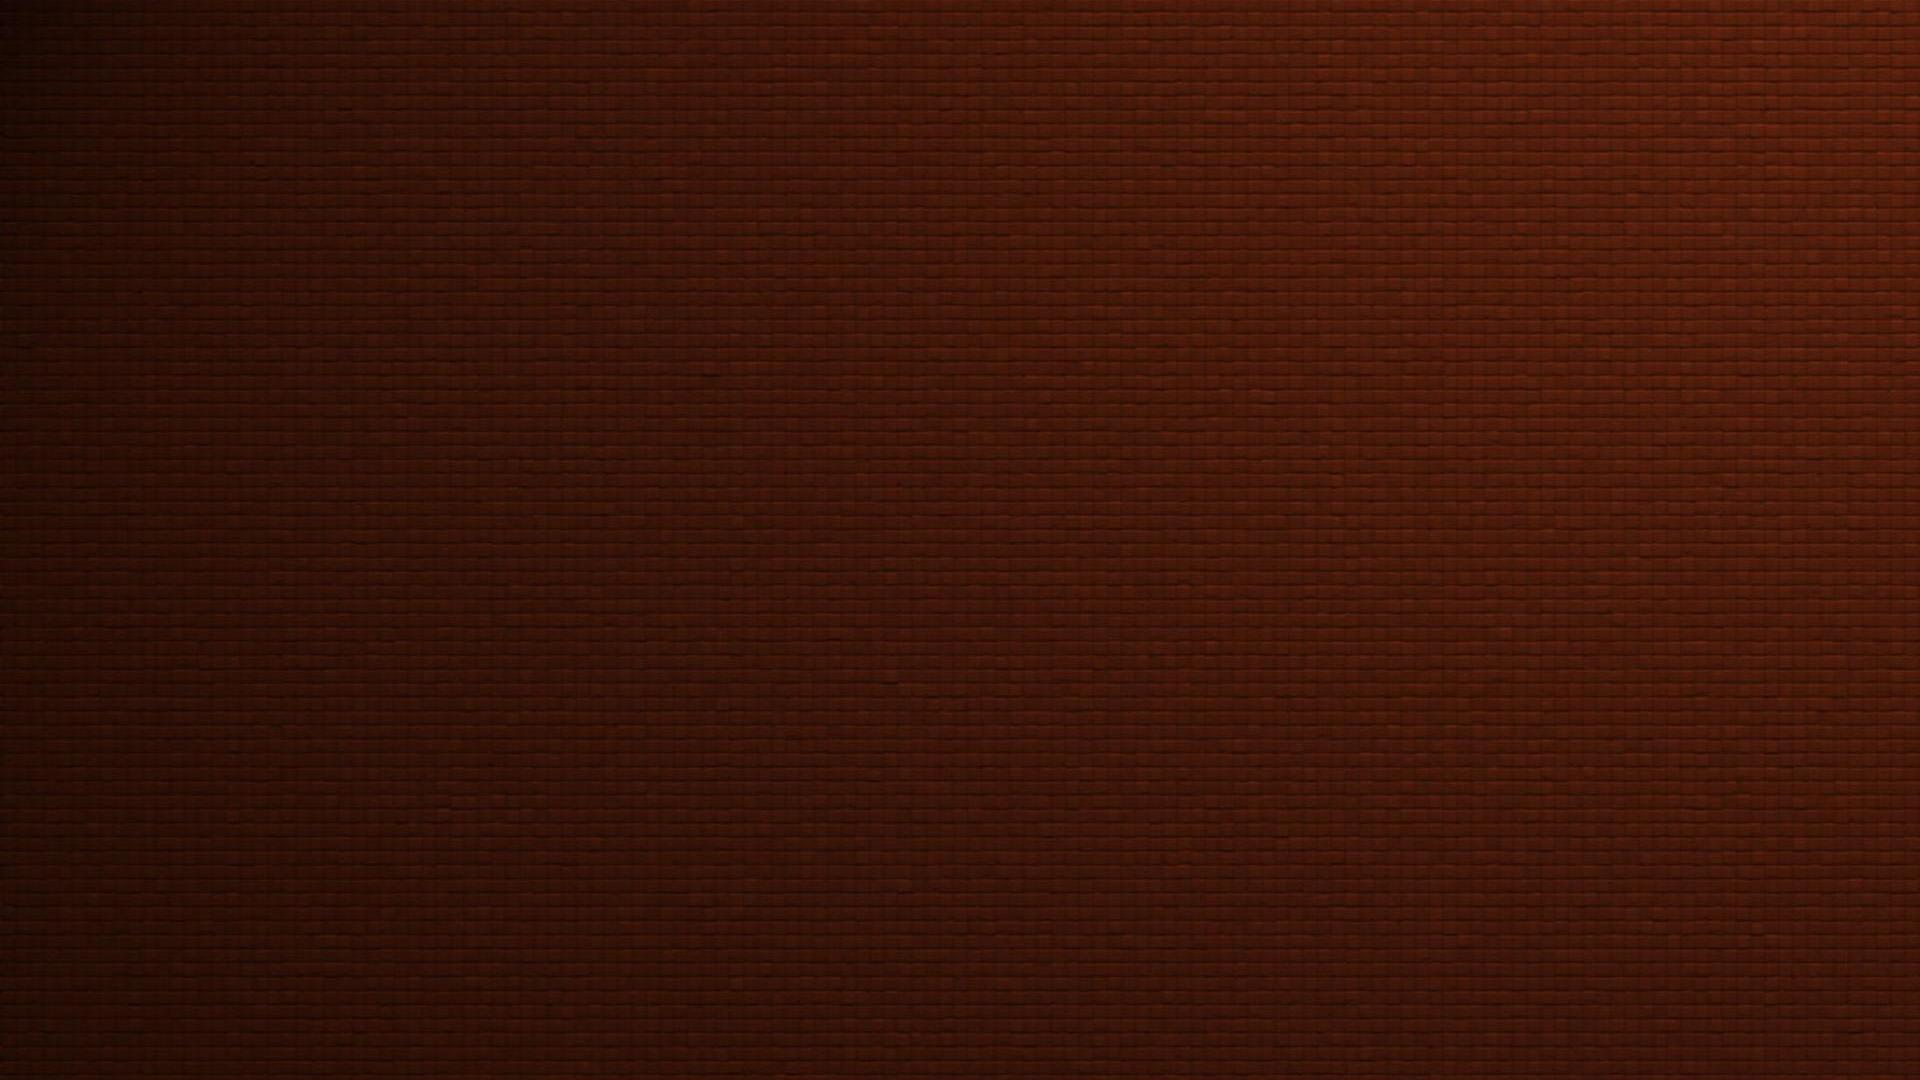 high-quality background brown